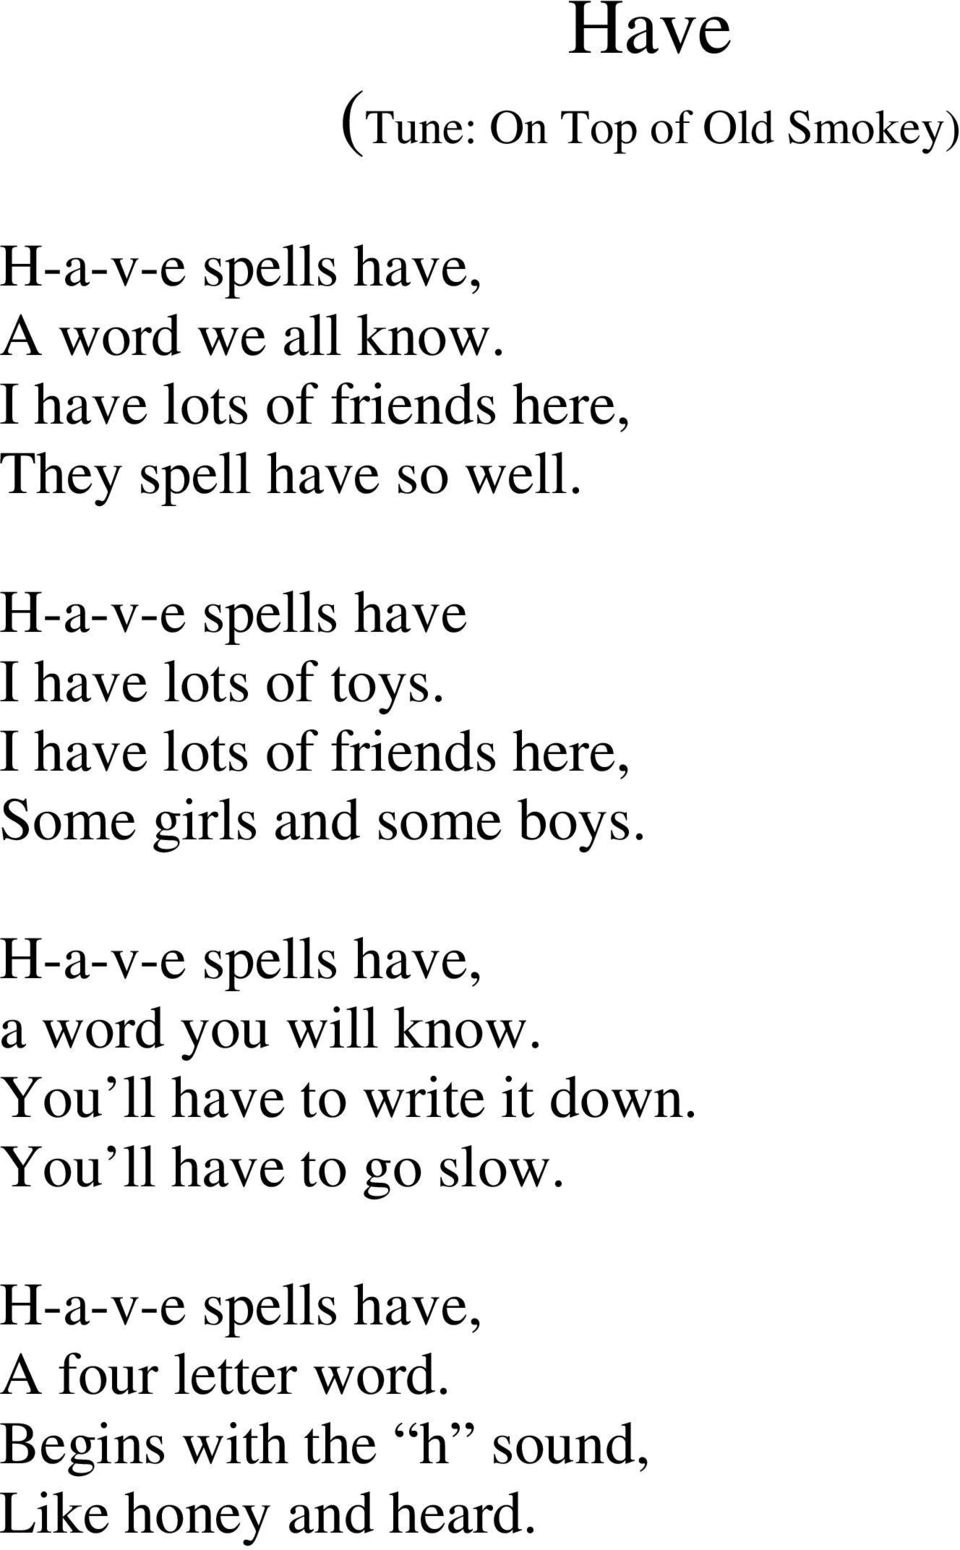 I have lots of friends here, Some girls and some boys. H-a-v-e spells have, a word you will know.